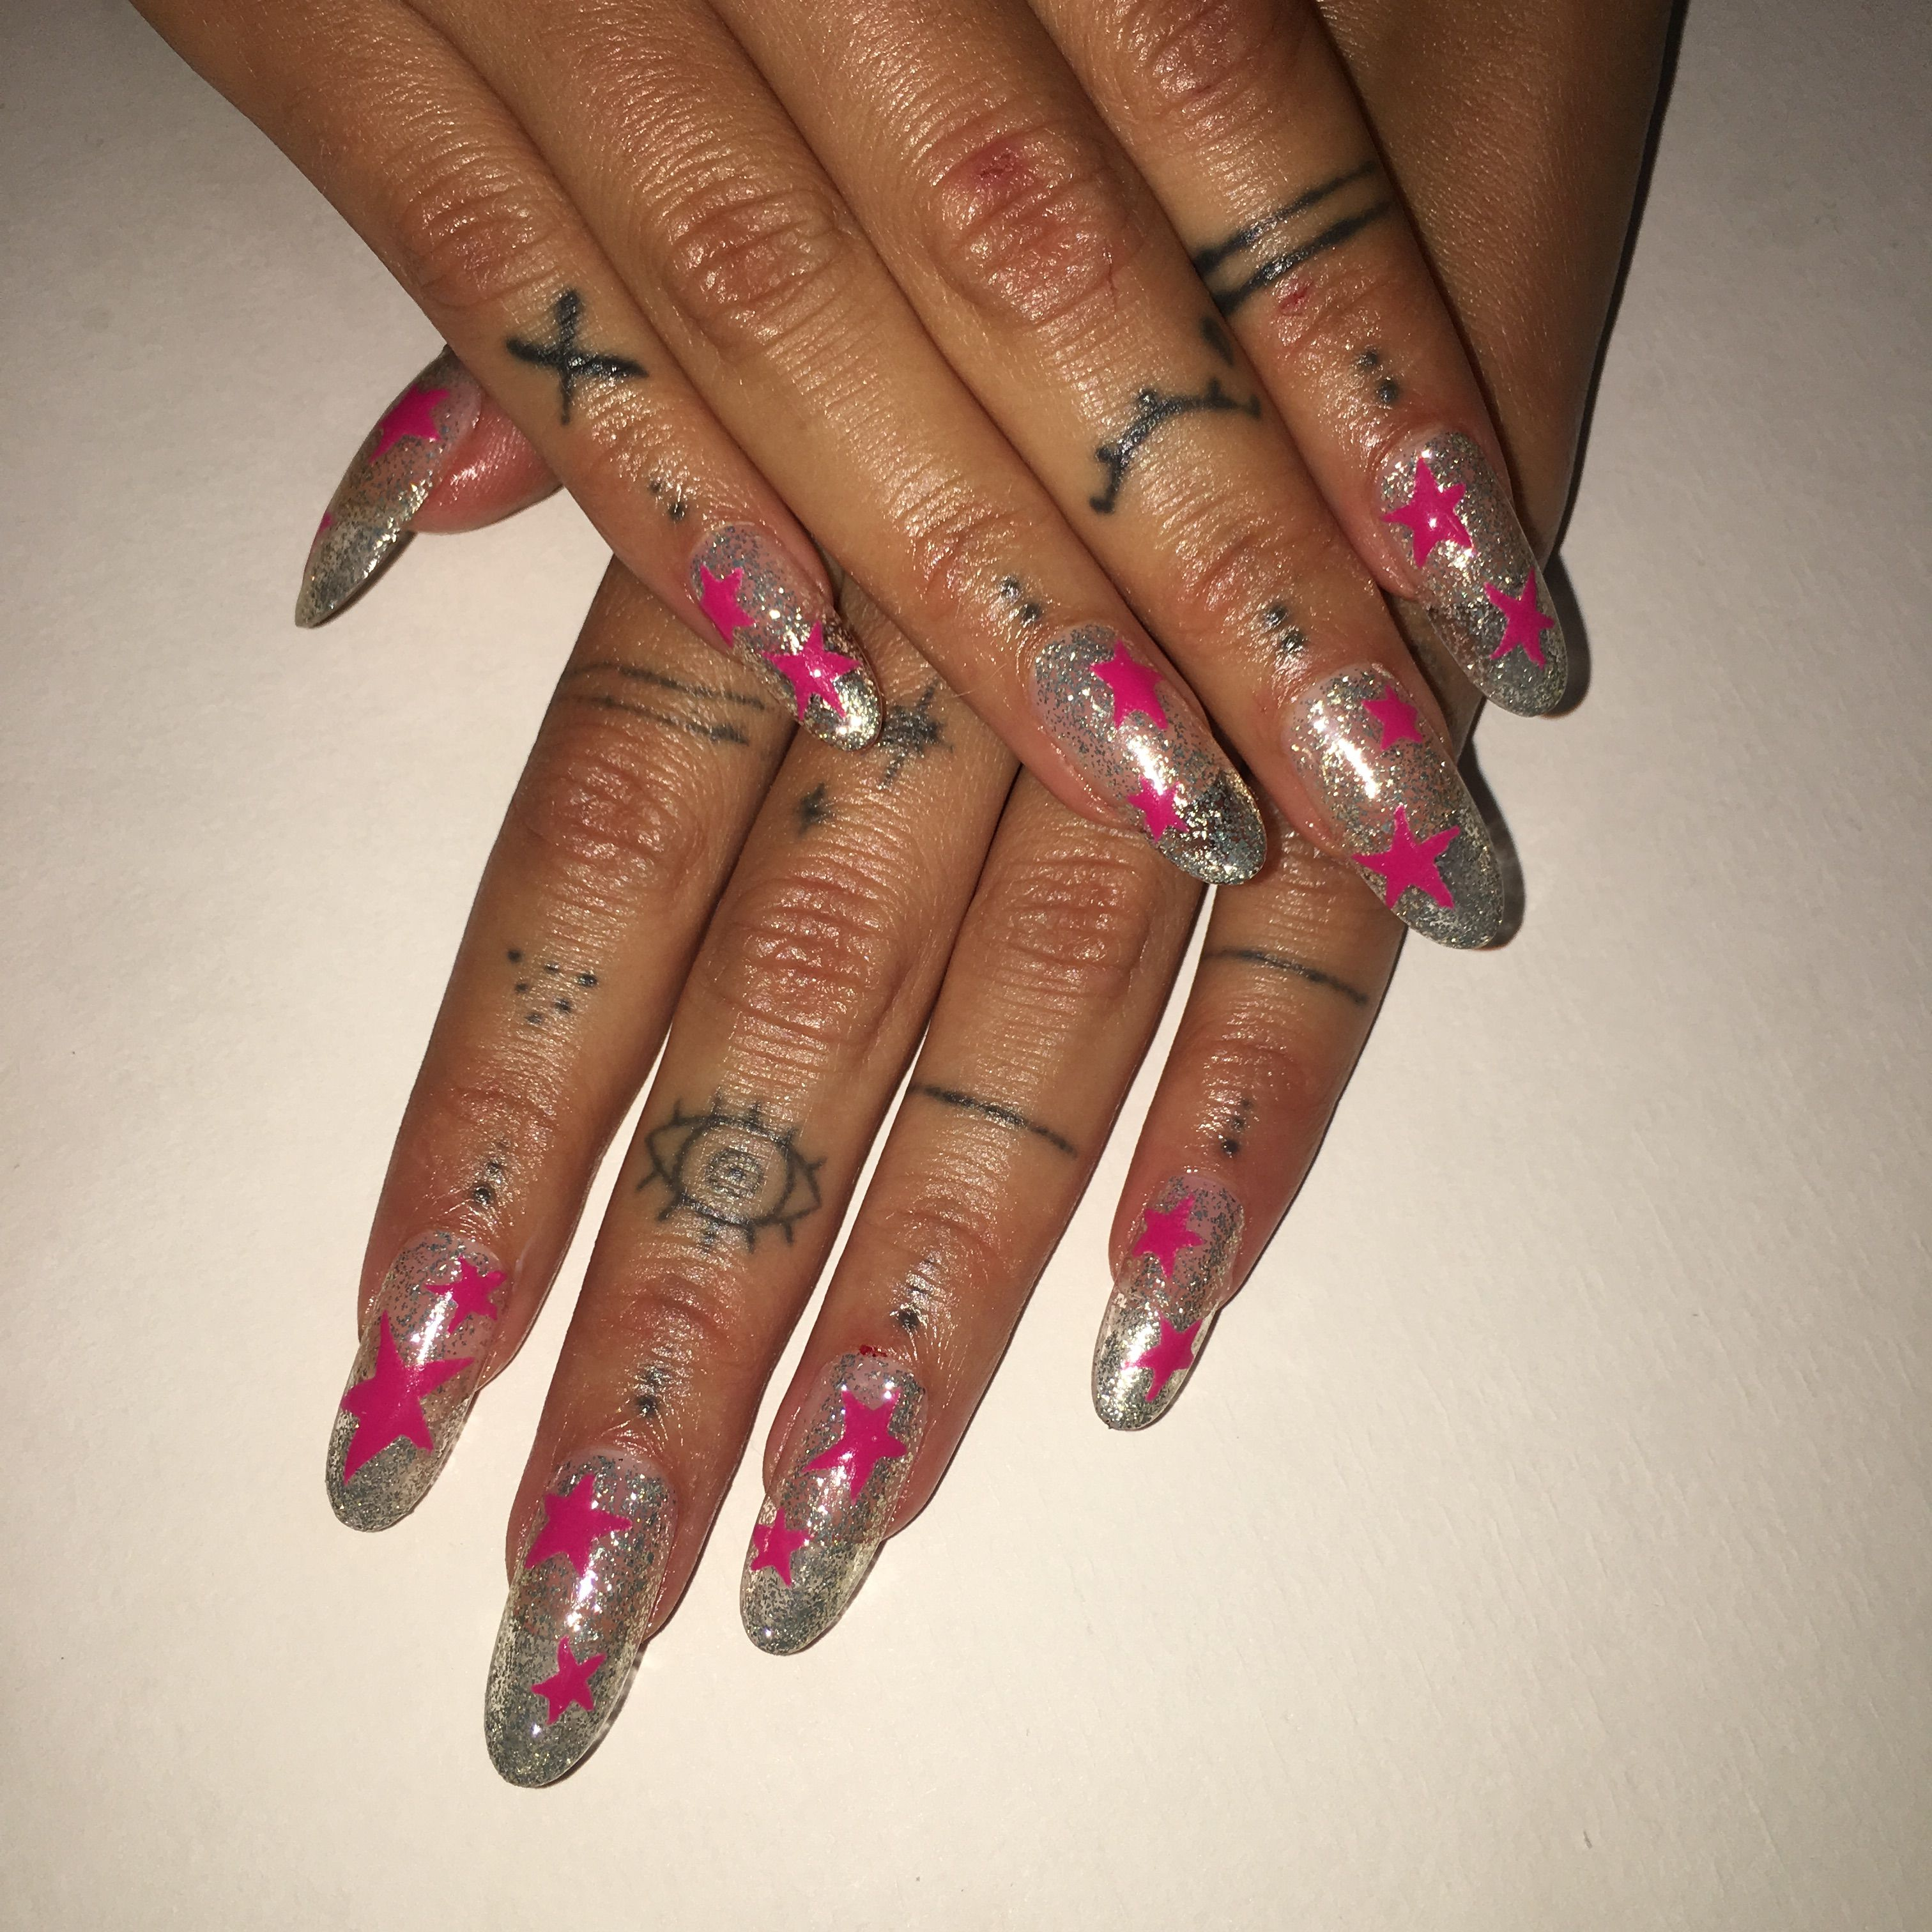 Nails by @mannequin.hands @llydiakirwood | PERSONAL @llydiakirwood ...